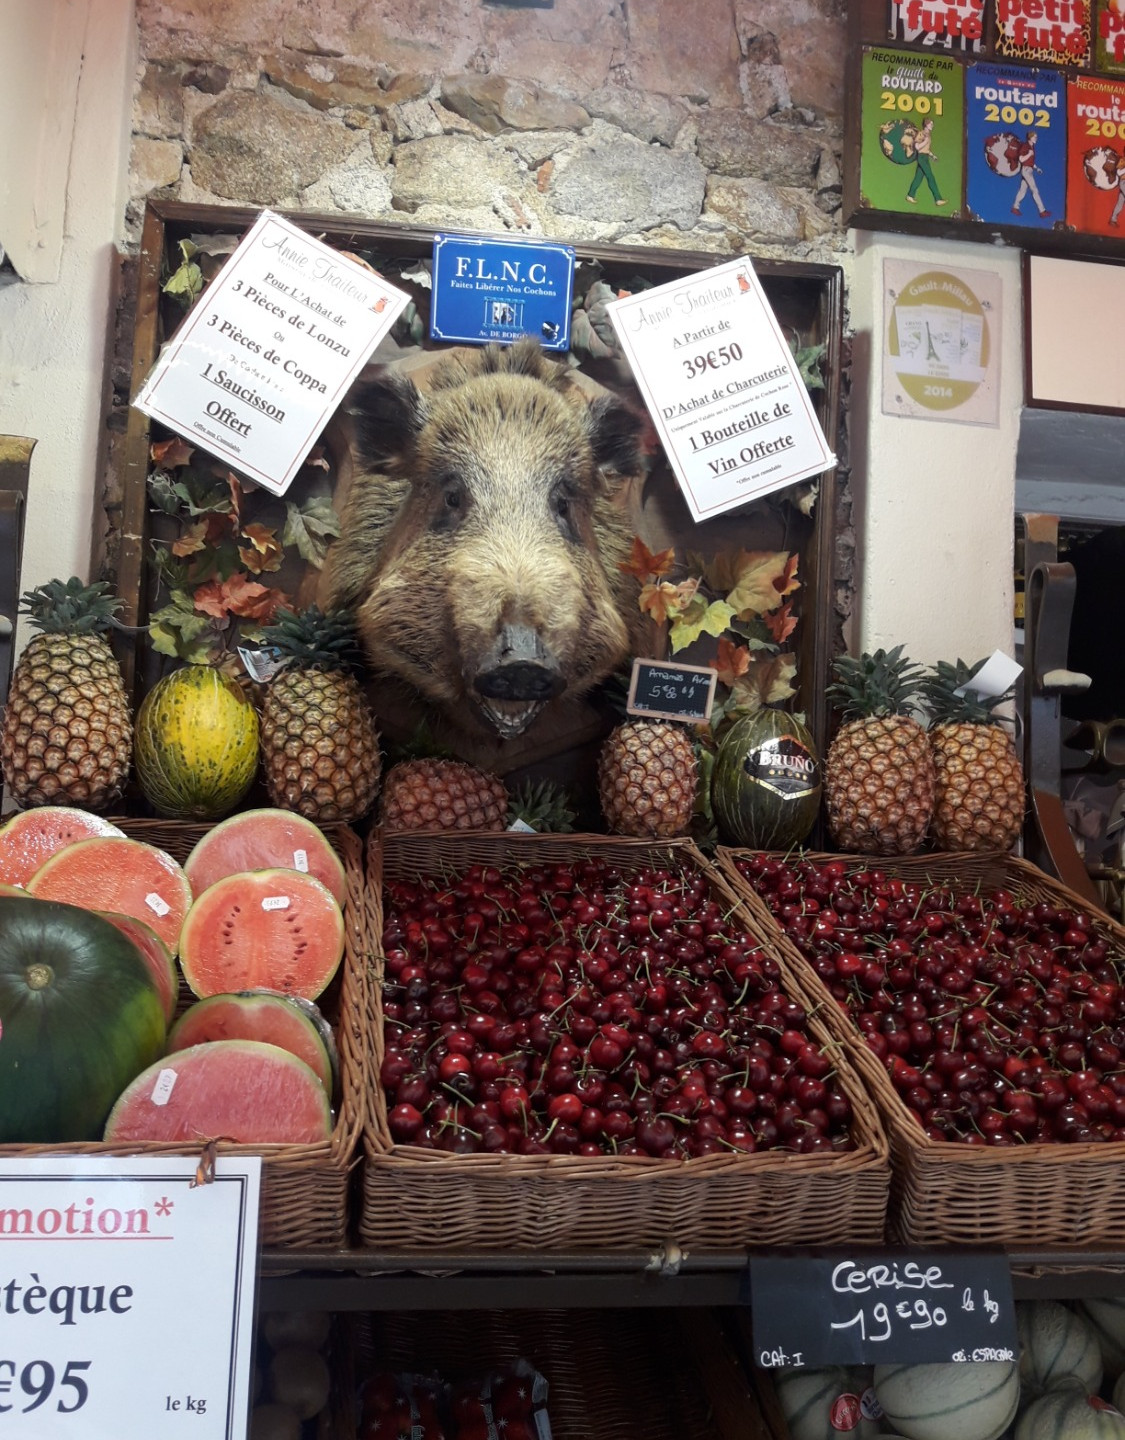 Wild boar and cherries, St Florent